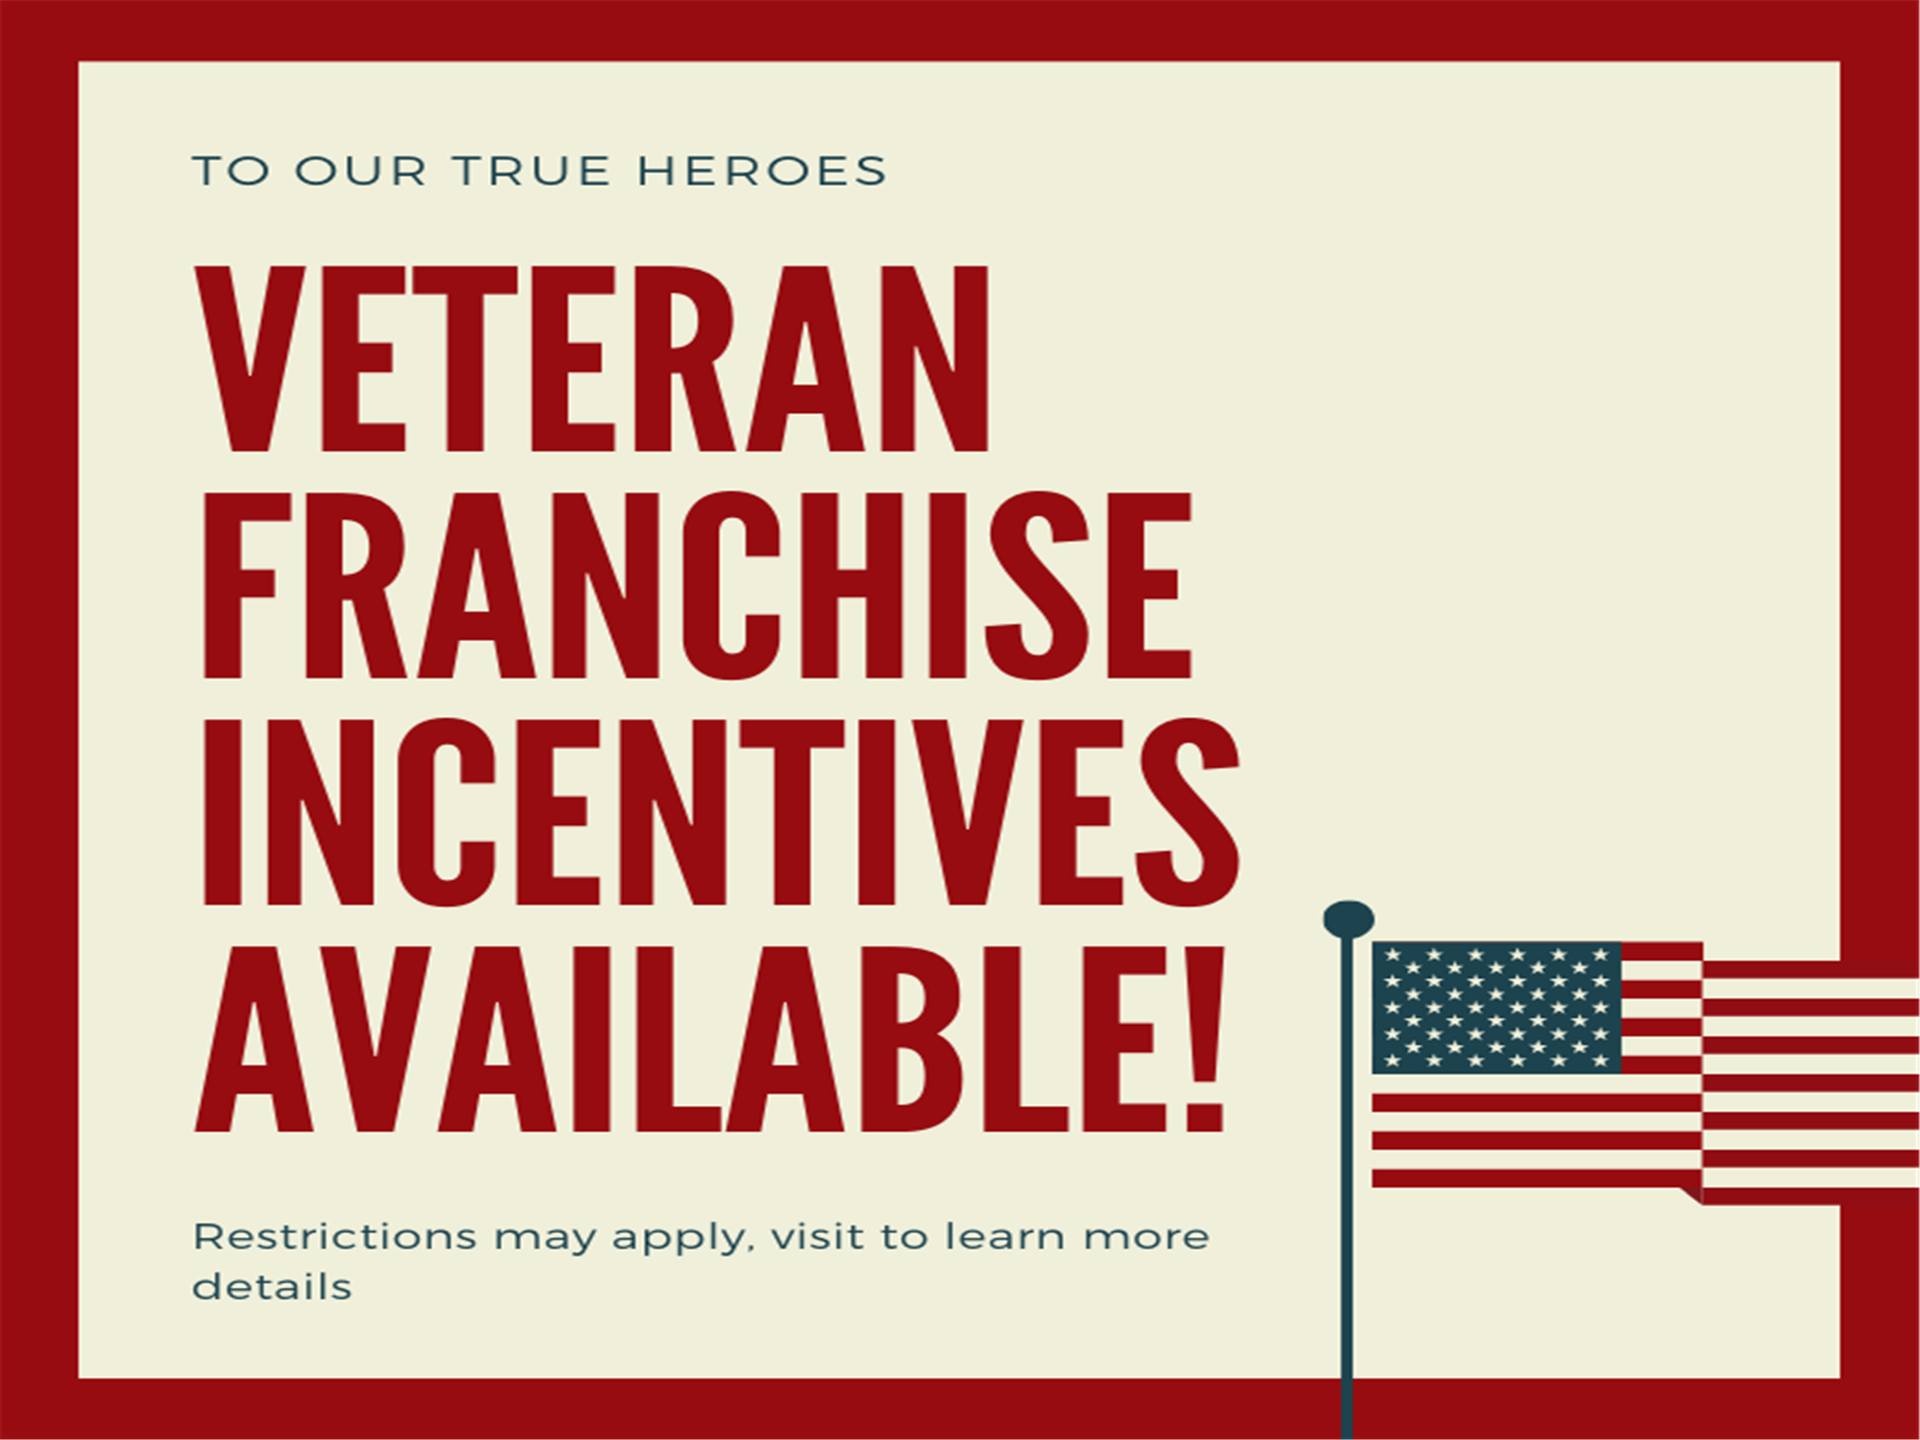 To our true heroes: Veteran Franchise Incentives Available! Restrictions may apply. Visit to learn more details.